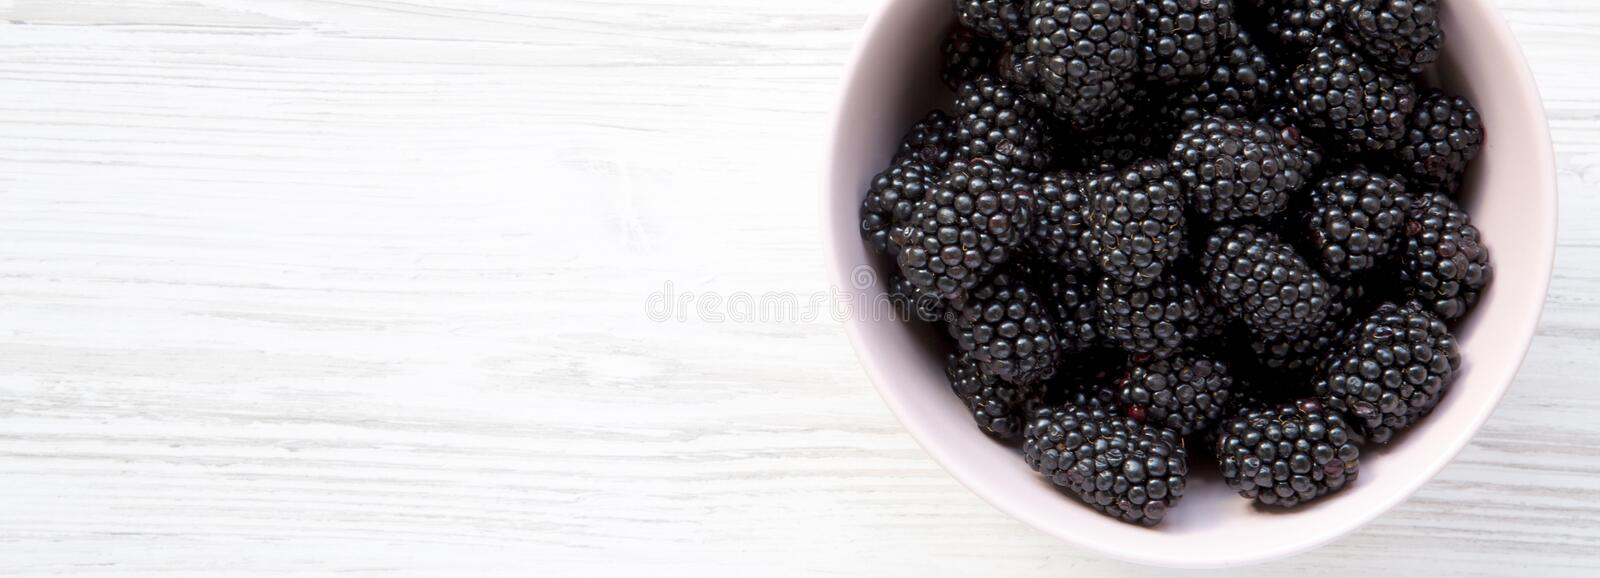 Fresh organic blackberries in pink bowl on a white wooden surface. Close-up. Copy space stock image